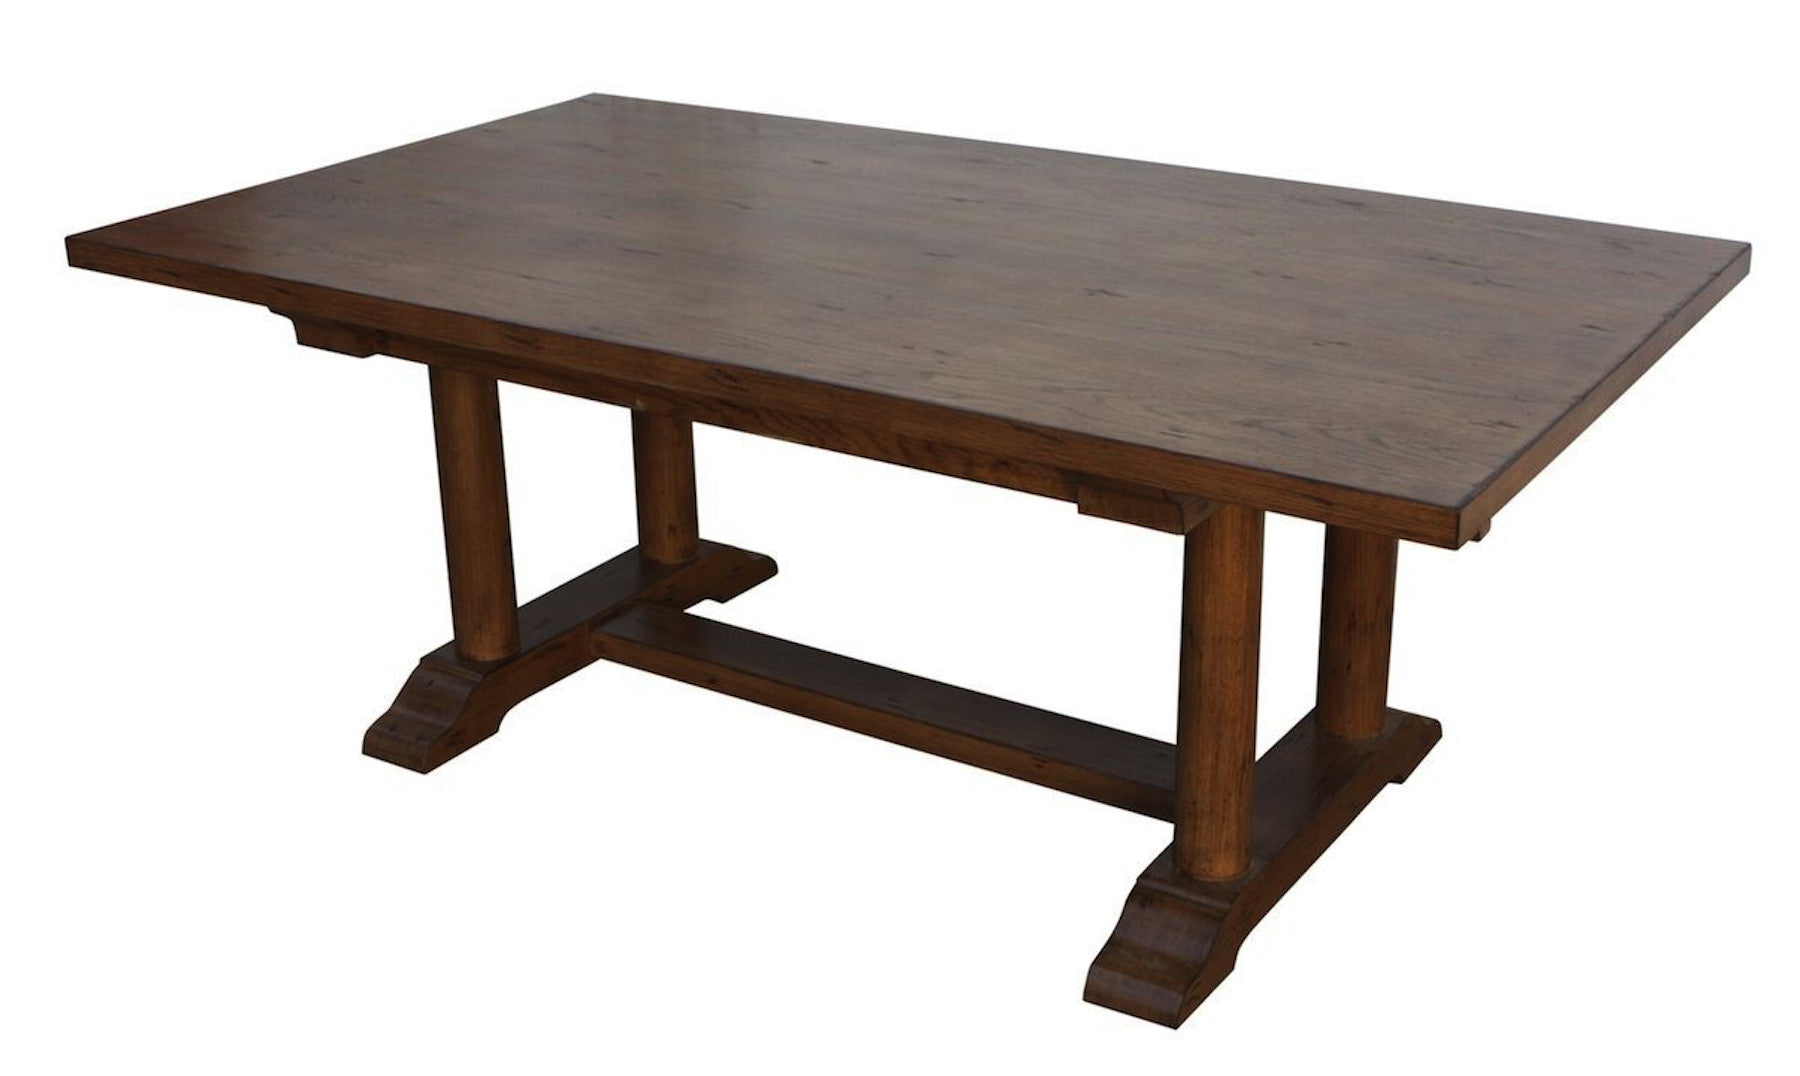 Walnut trestle dining table -  Cambria Rustic Extension Trestle Dining Table Built In Reclaimed Wood